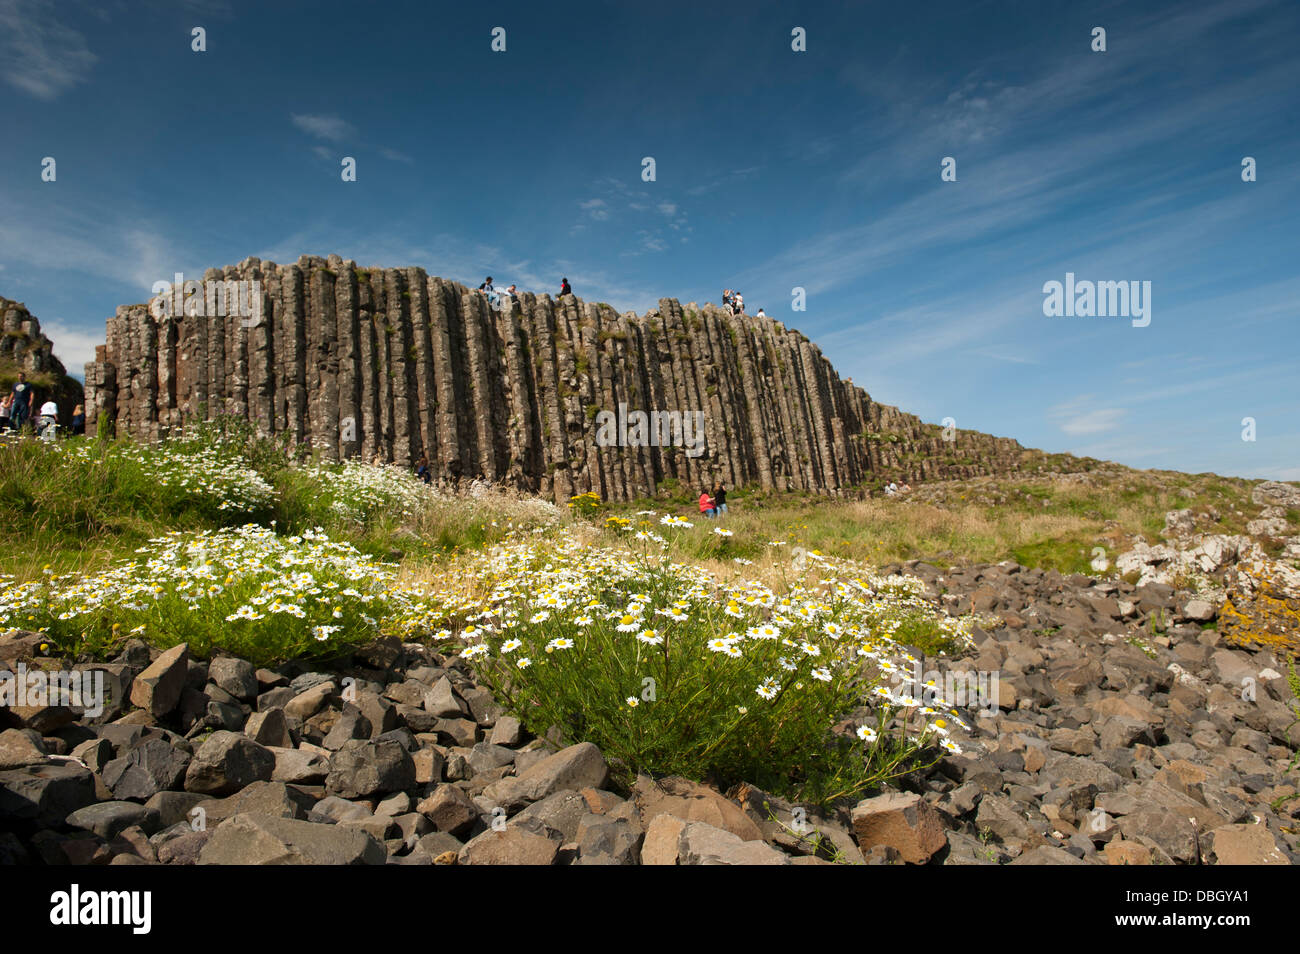 Visitors amongst the rocks and wildflowers at the Giants Causeway, Northern Ireland. - Stock Image